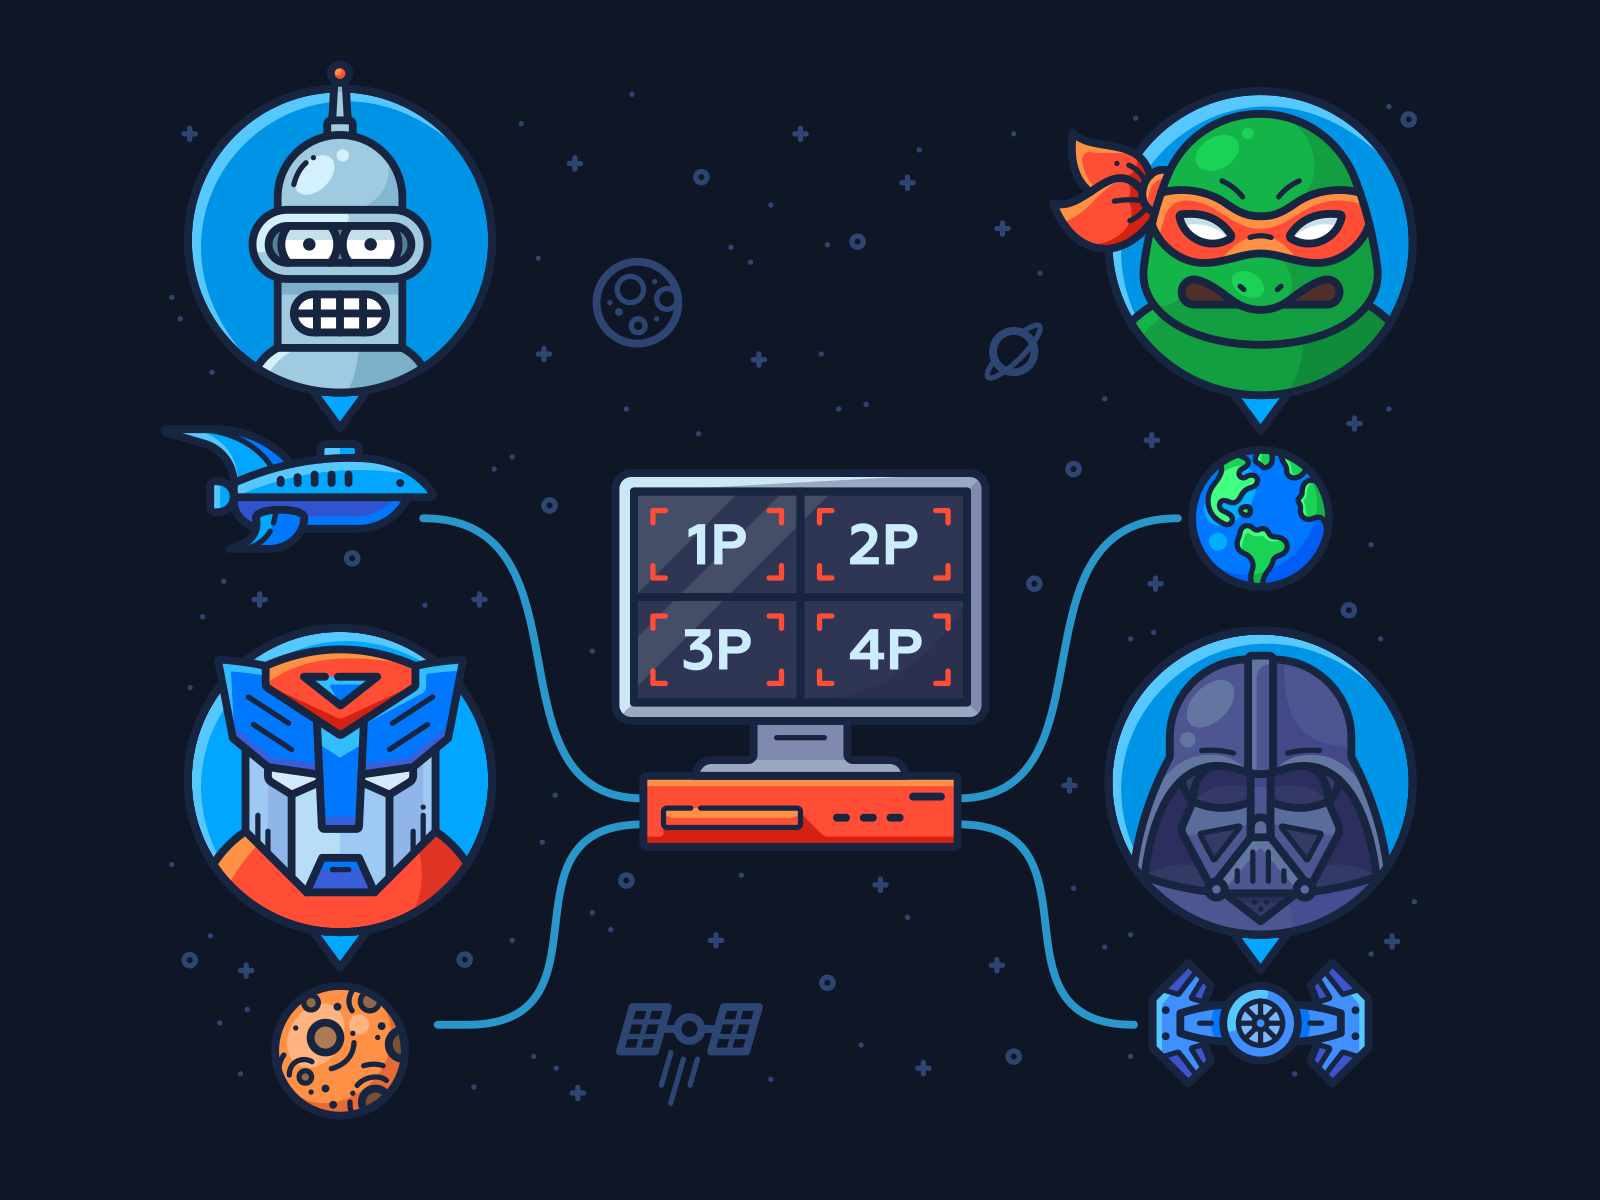 Play With Your Friends multiplayer coop earth teenage movie character icon illustration sticker game pc space planet wars star darth vader darthvader transformer bender comic